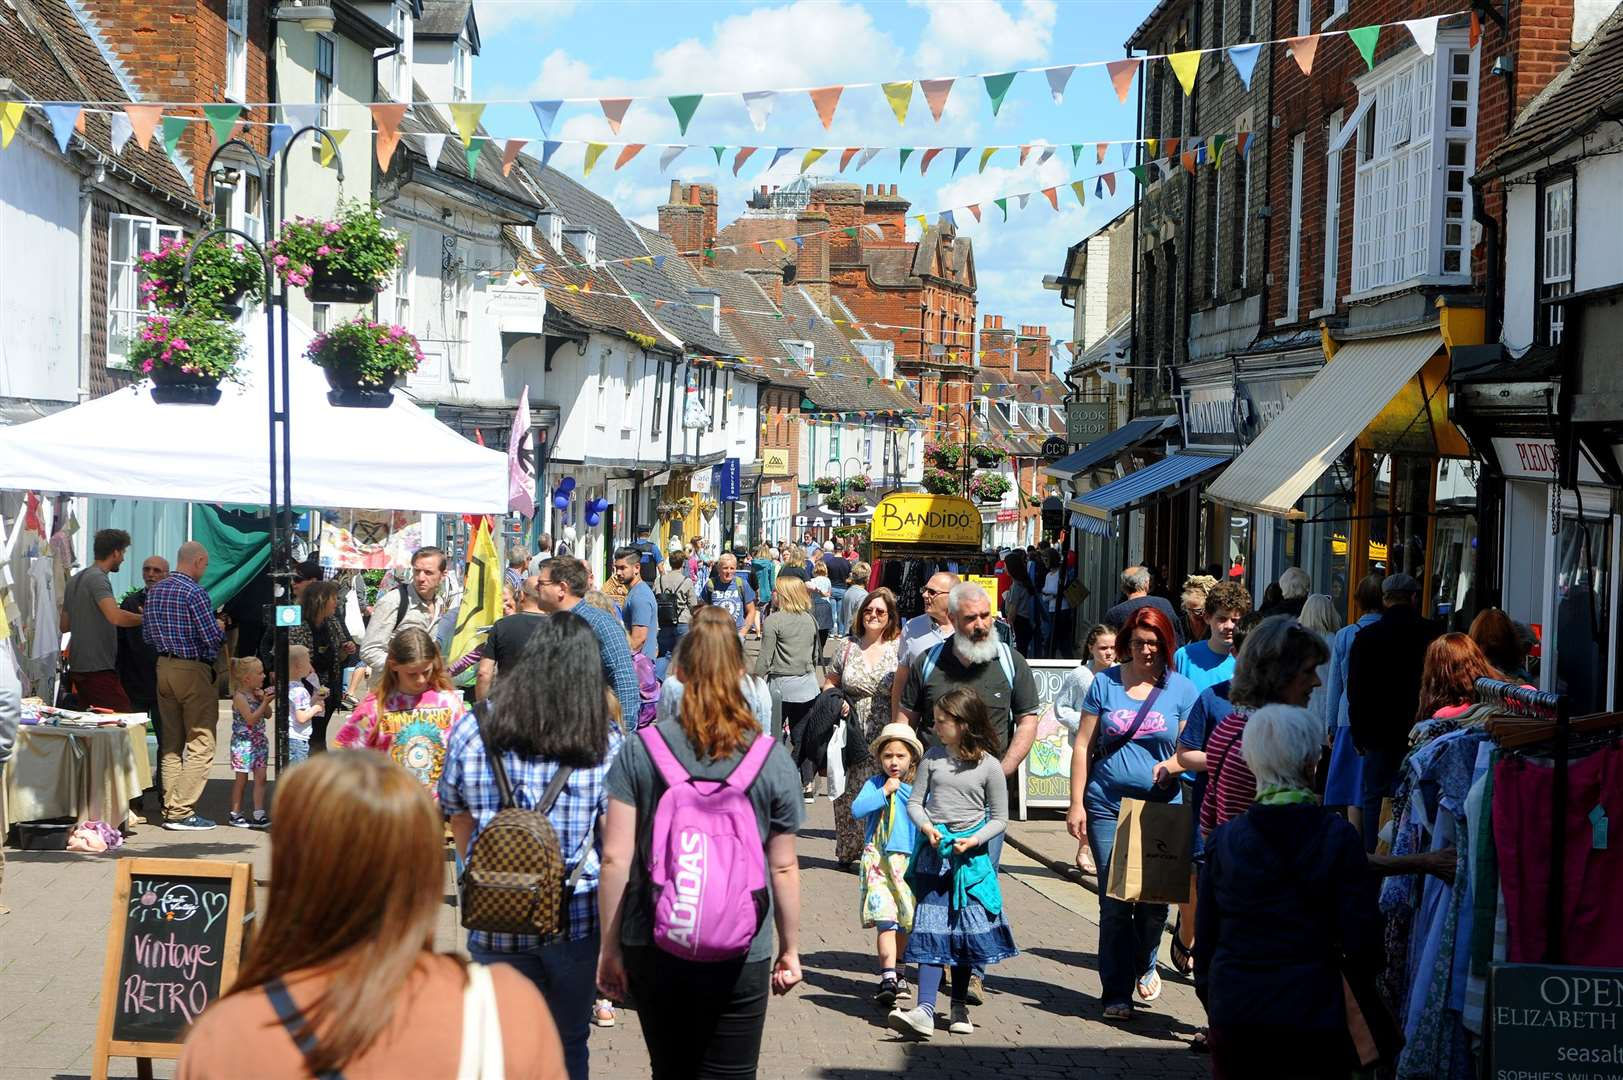 St John's Street Festival attracted more than 1,000 to the town